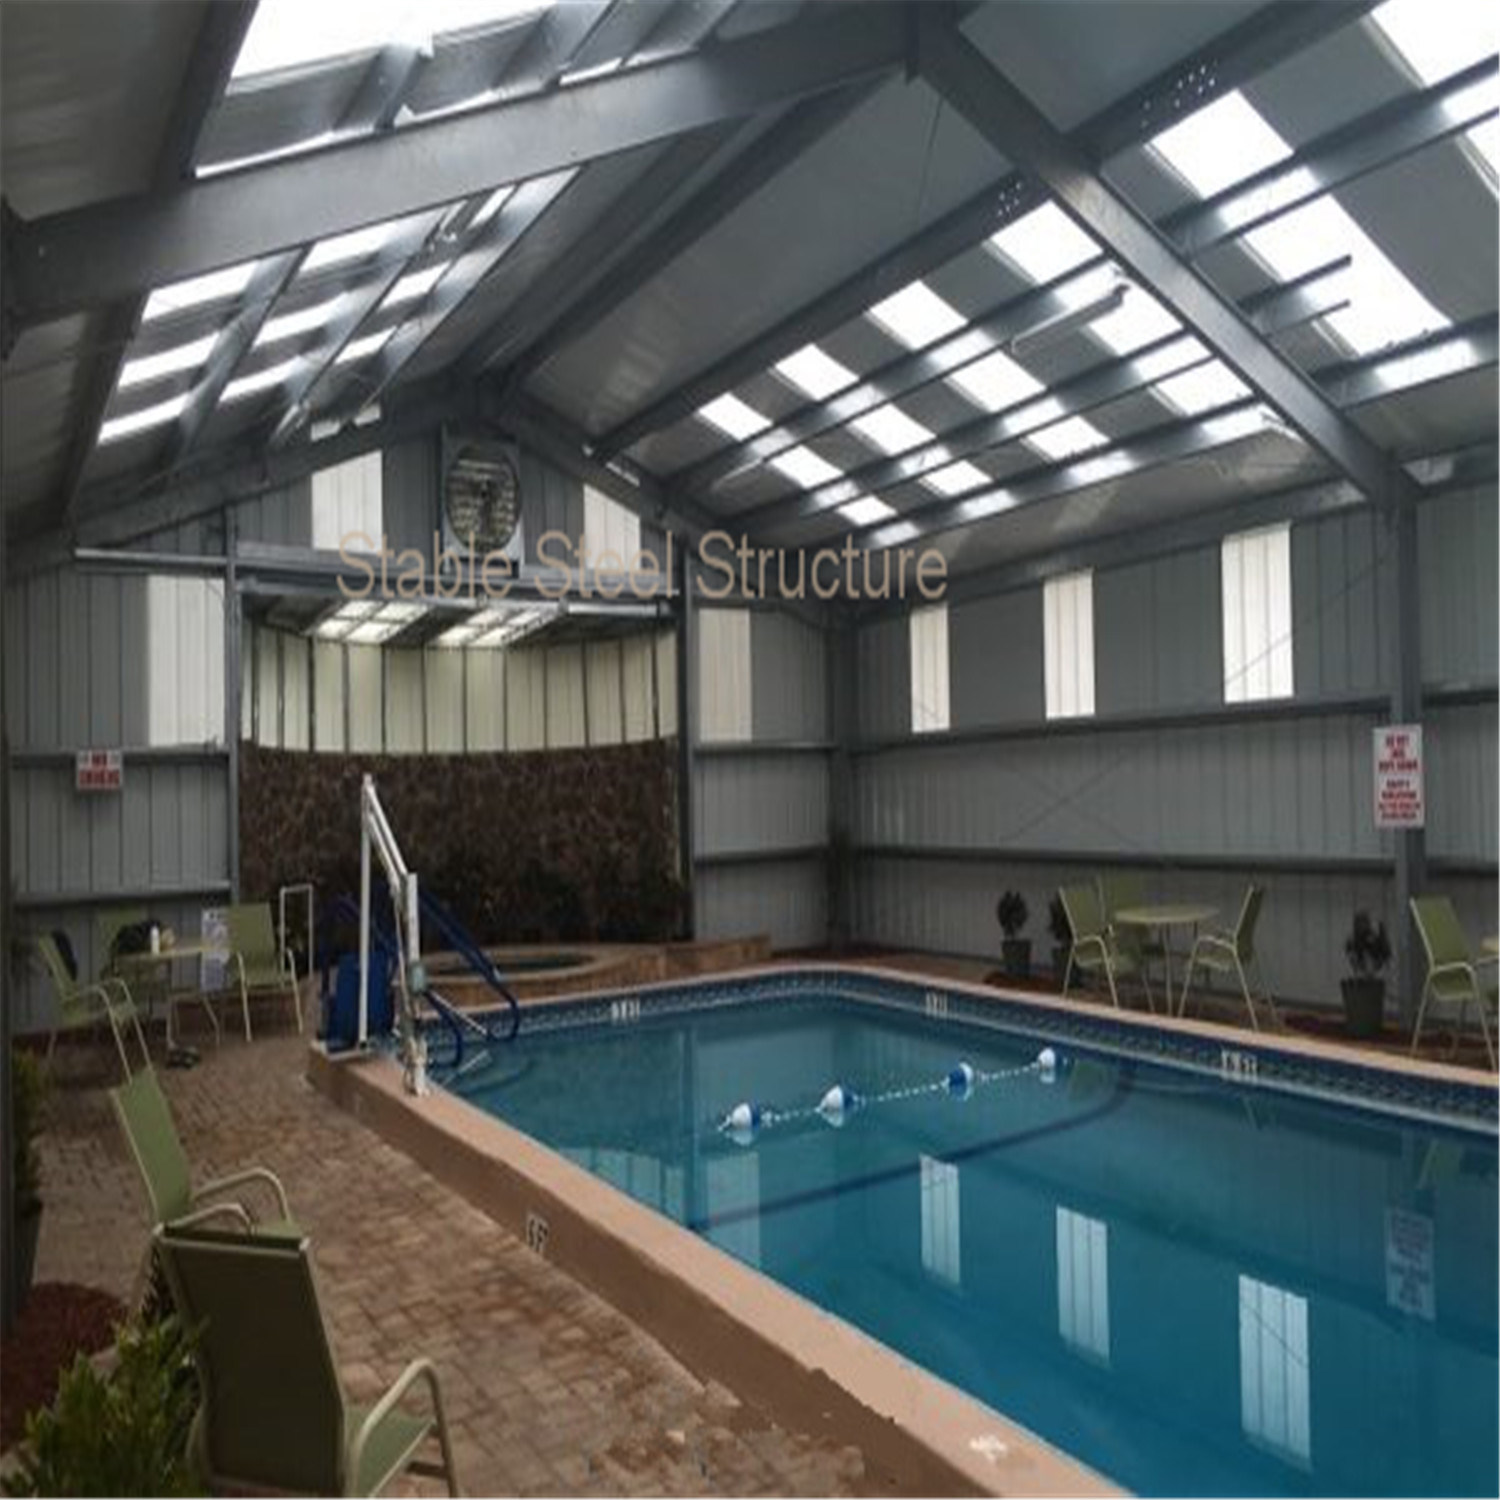 [Hot Item] Long-Span Prefabricated Steel Structure for Swimming Pool